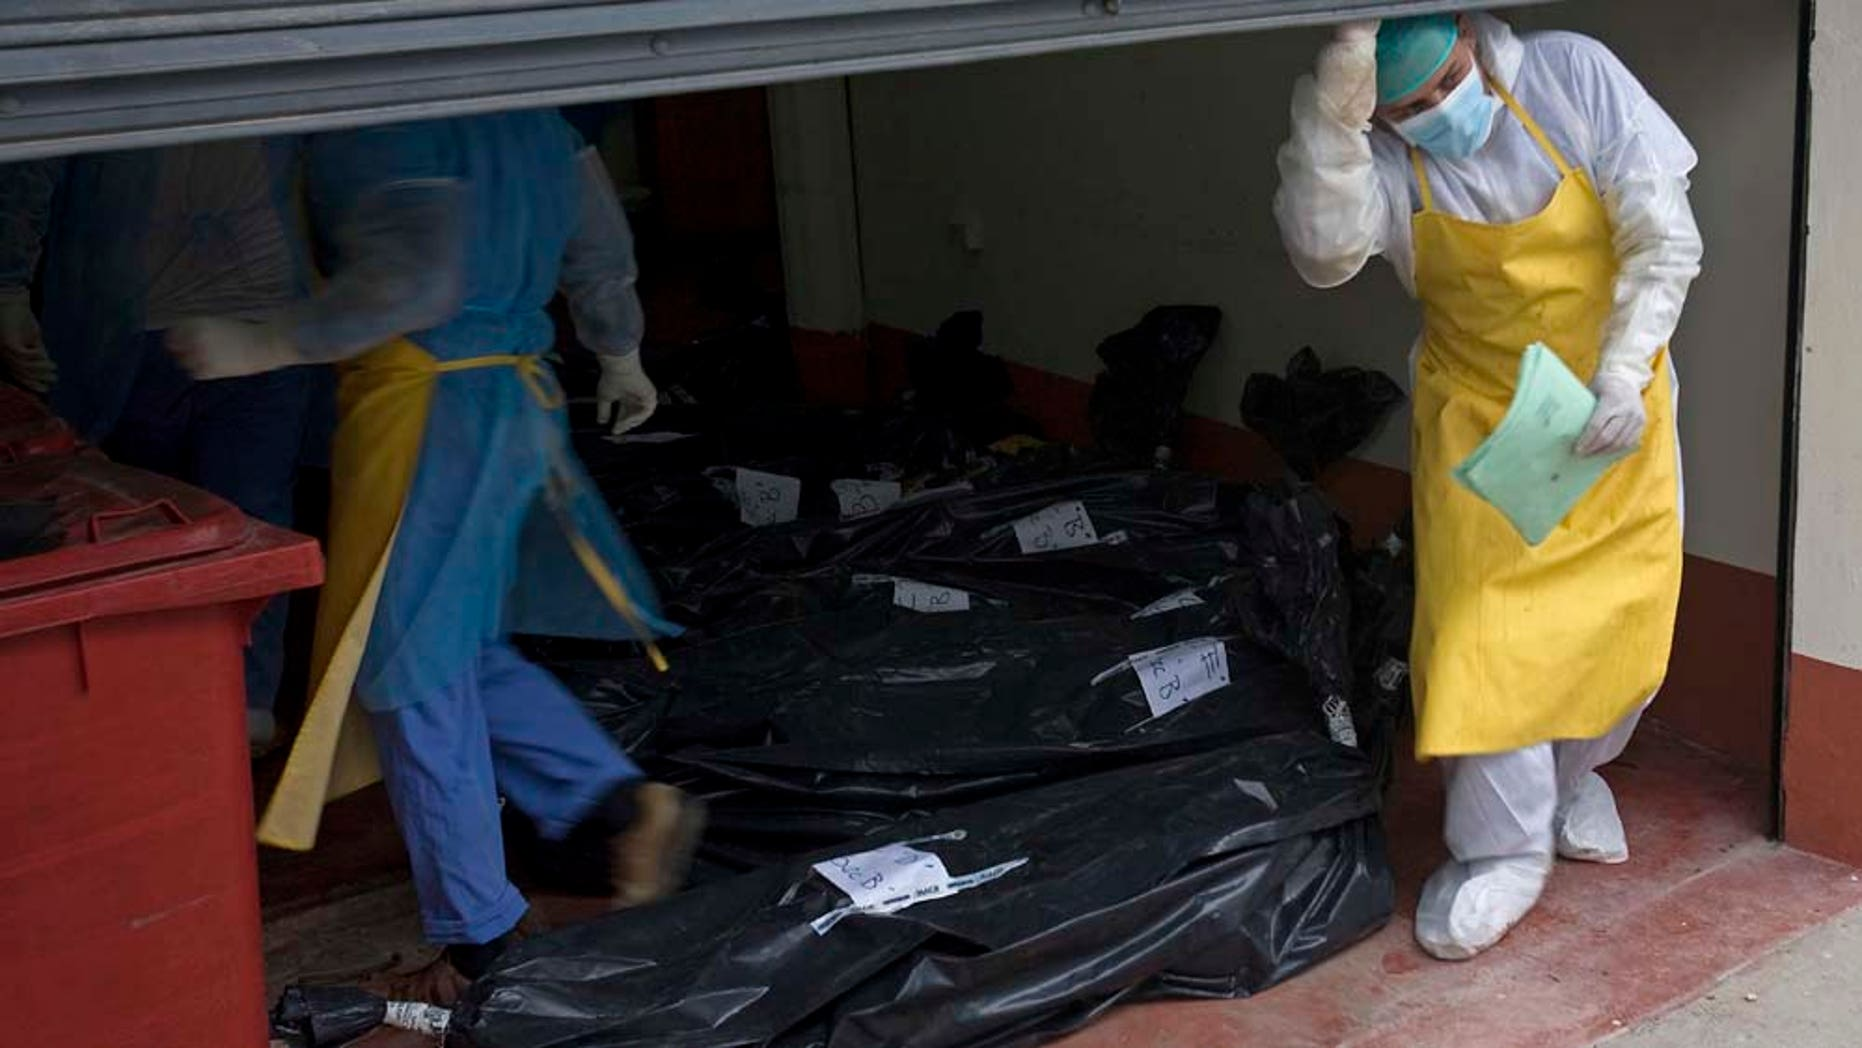 Morgue employees take in the bodies that were found on a ranch in northern Guatemala, at the local morgue in San Benito, Guatemala, Monday, May 16, 2011. Initial reports said assailants killed Sunday at least 29 people, but Monday the death toll confirmed decreased to 27 persons. Guatemalan authorities on Monday blamed the massacre on the Mexican drug cartel the Zetas. (AP Photo/Moises Castillo)